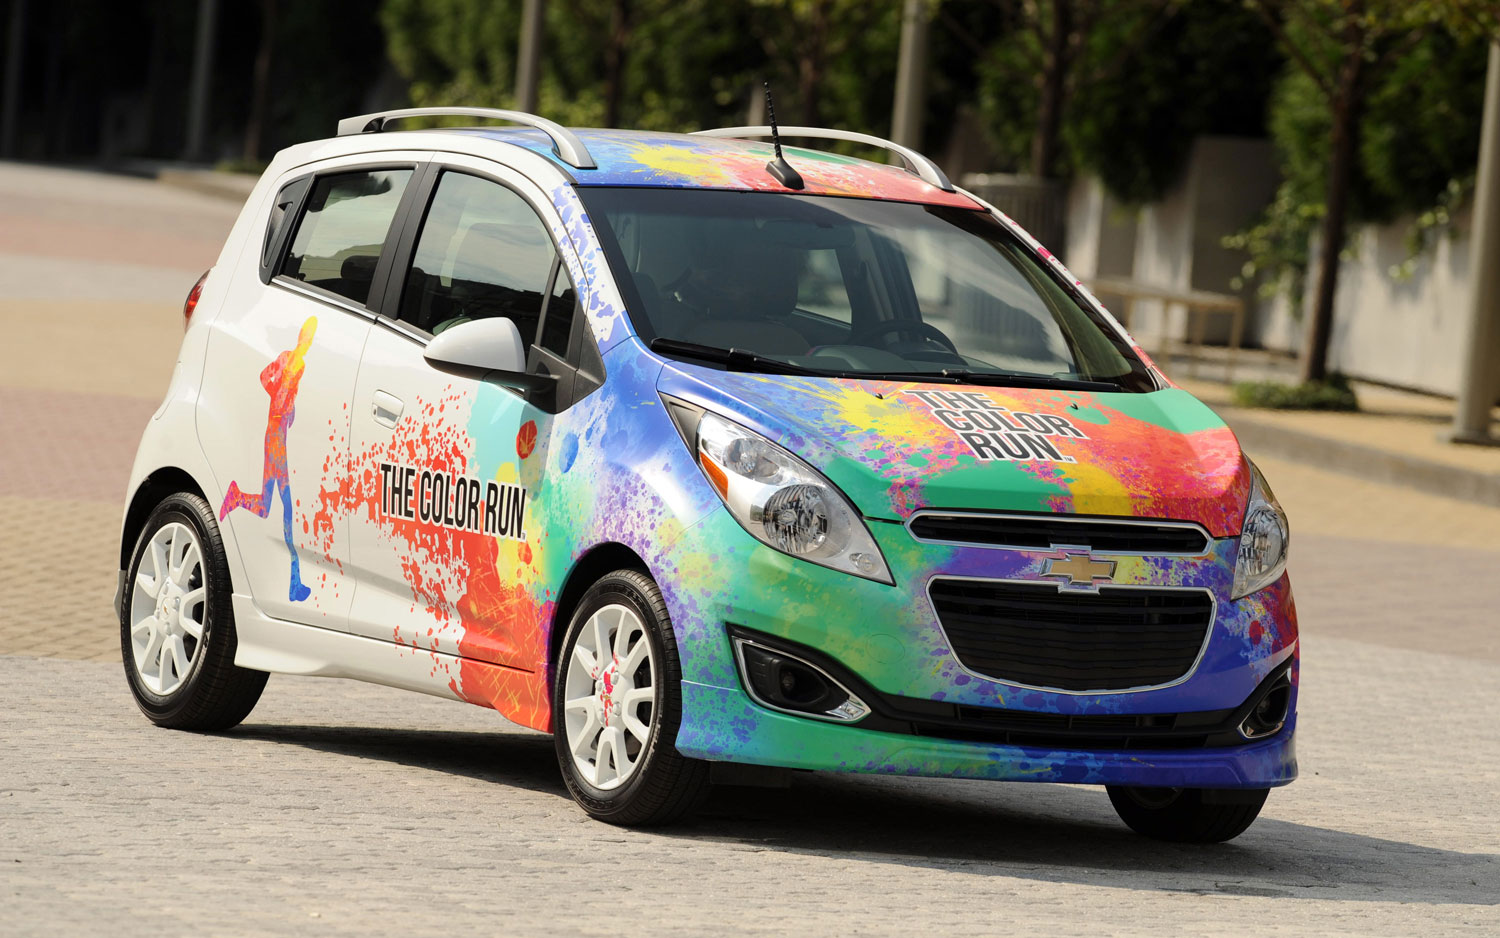 Land Rover Defender Suv Image further Chevrolet Spark With Color Run Paint Scheme in addition Ccb Vbattach moreover Fs Pro Flight Sim furthermore S L. on tubular subwoofer